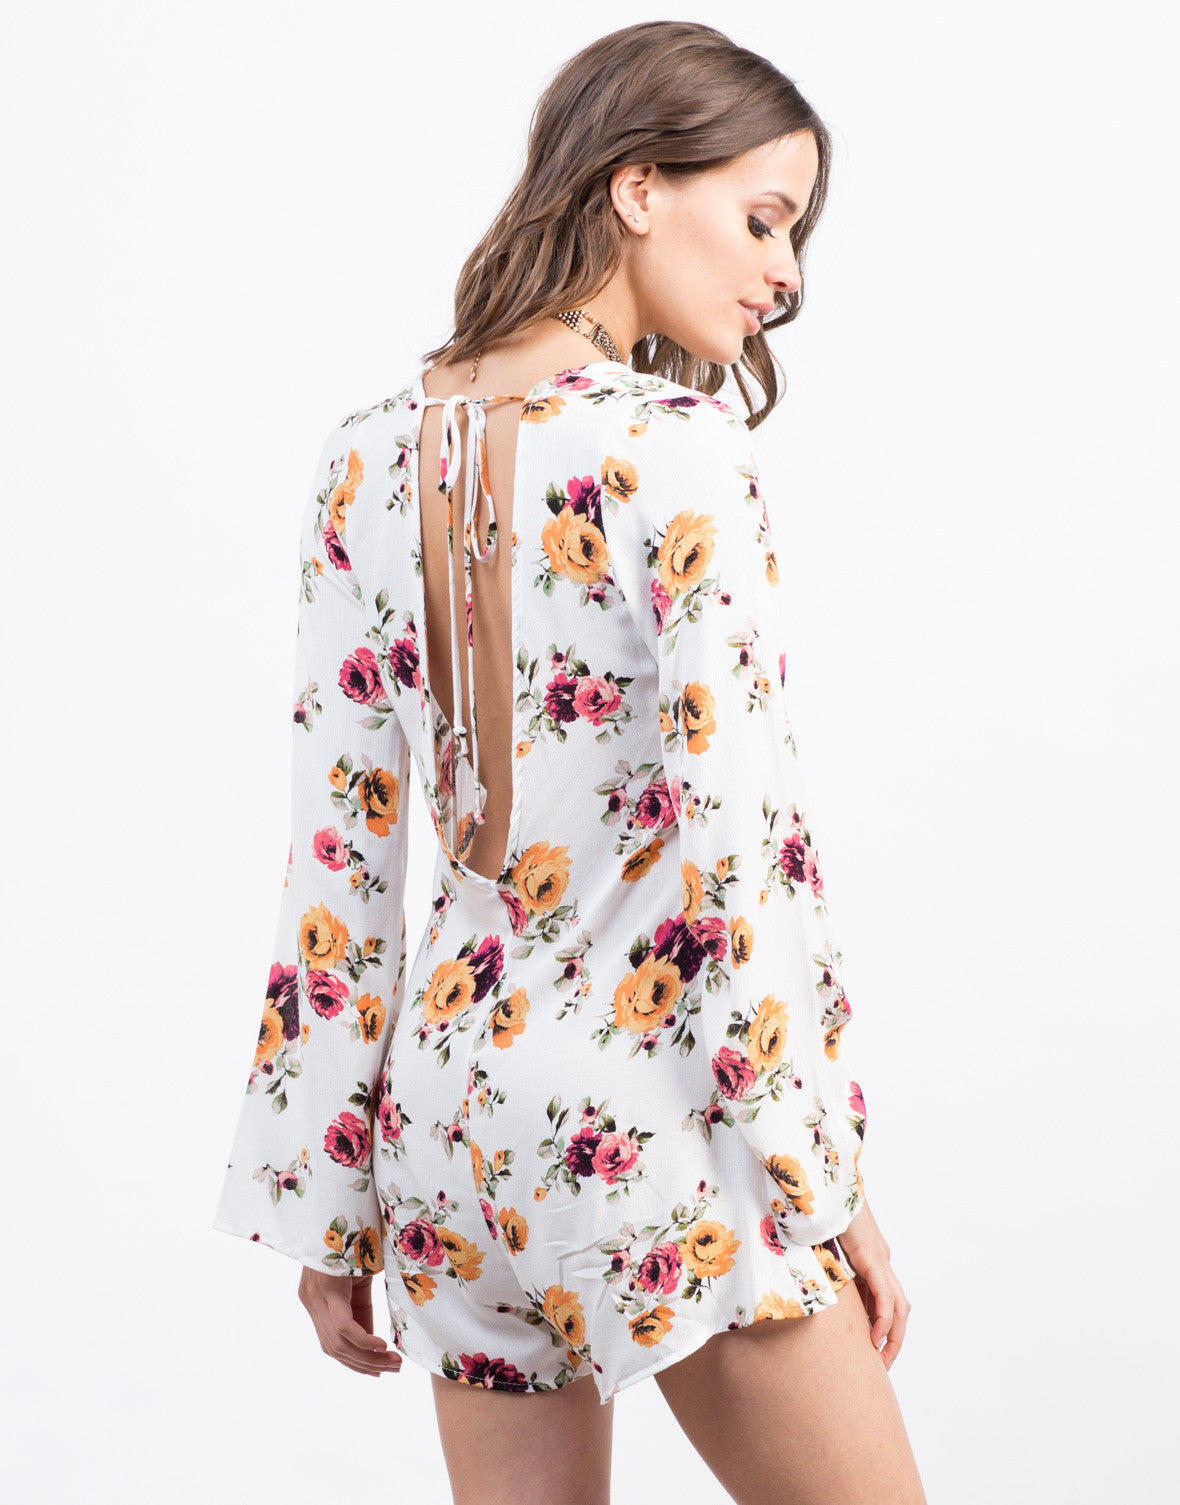 Back View of Spring Floral Romper